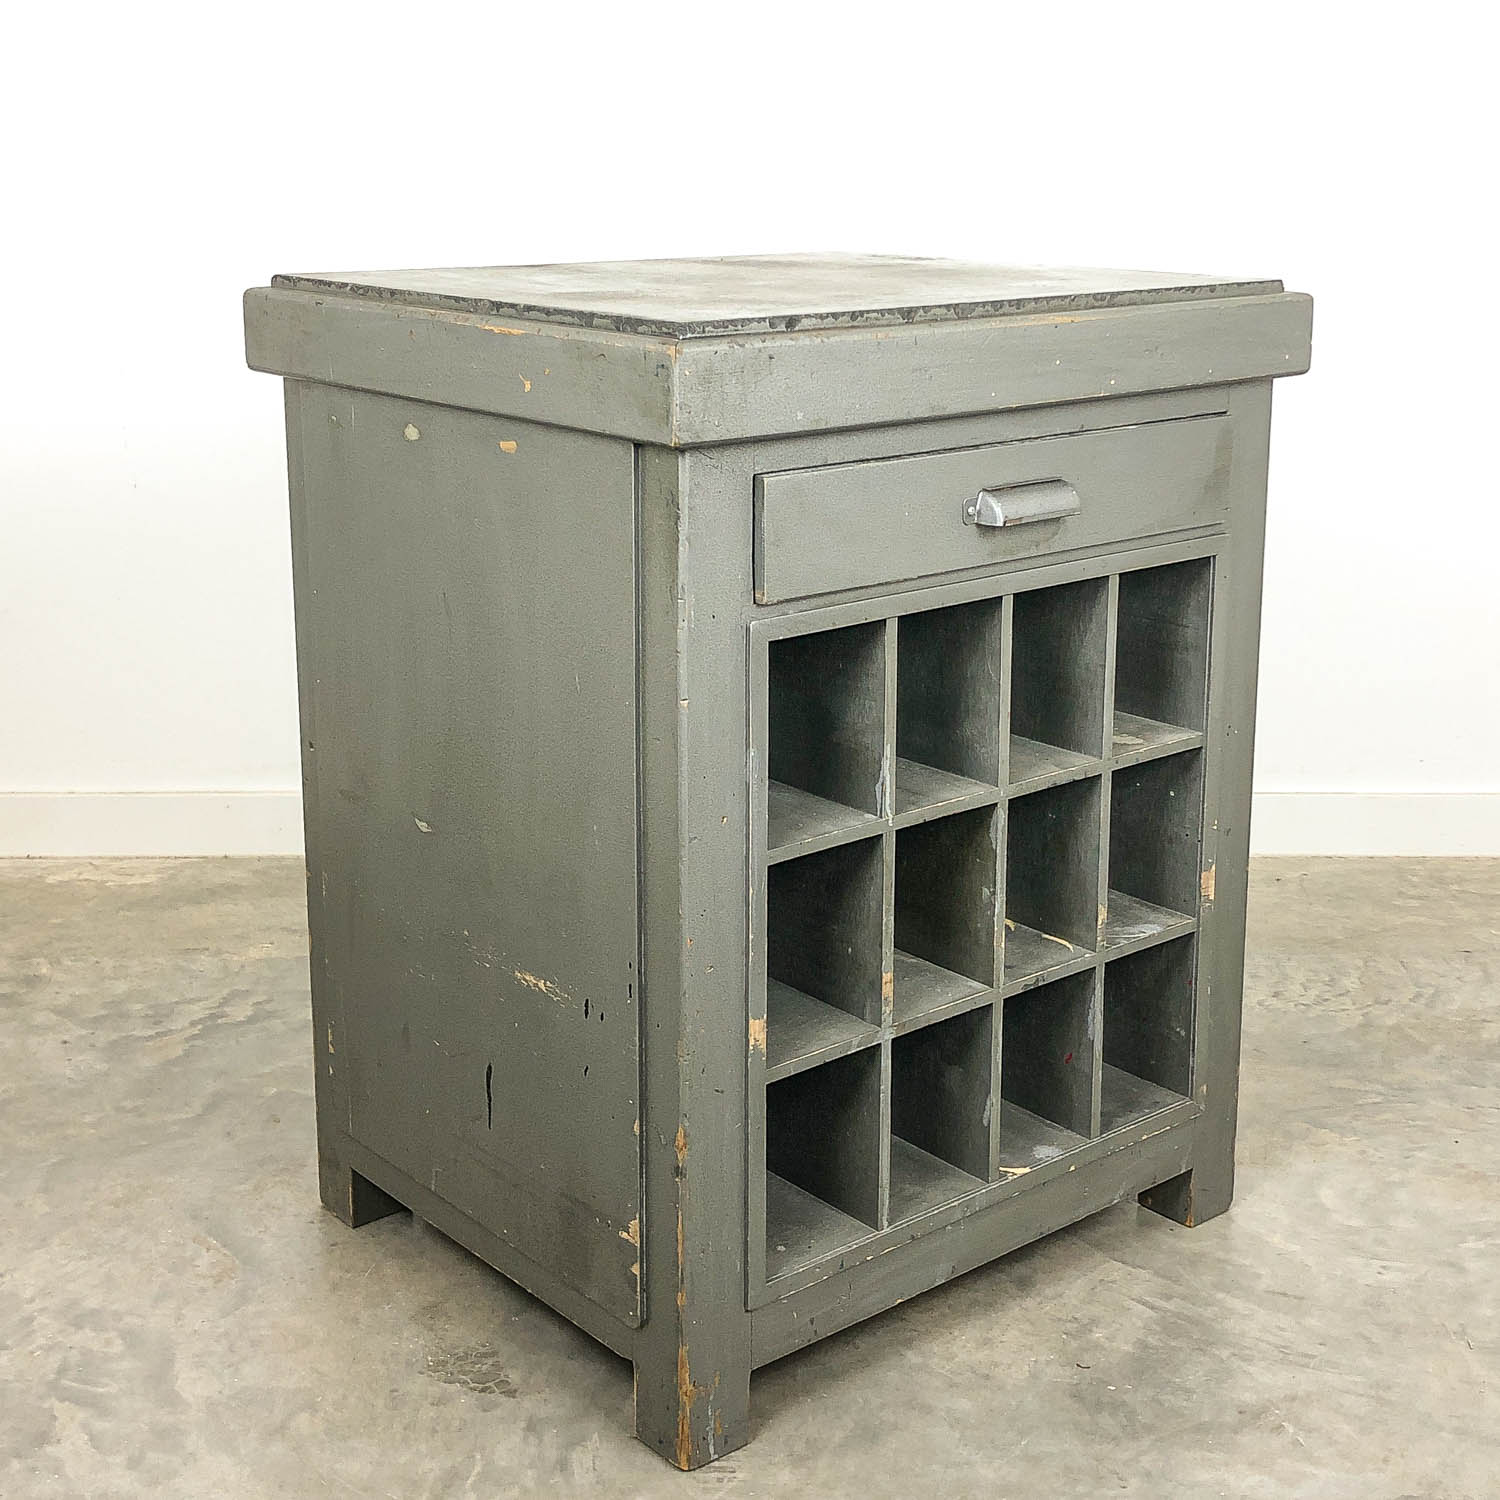 Vintage industrial printers table kitchen island with stone top